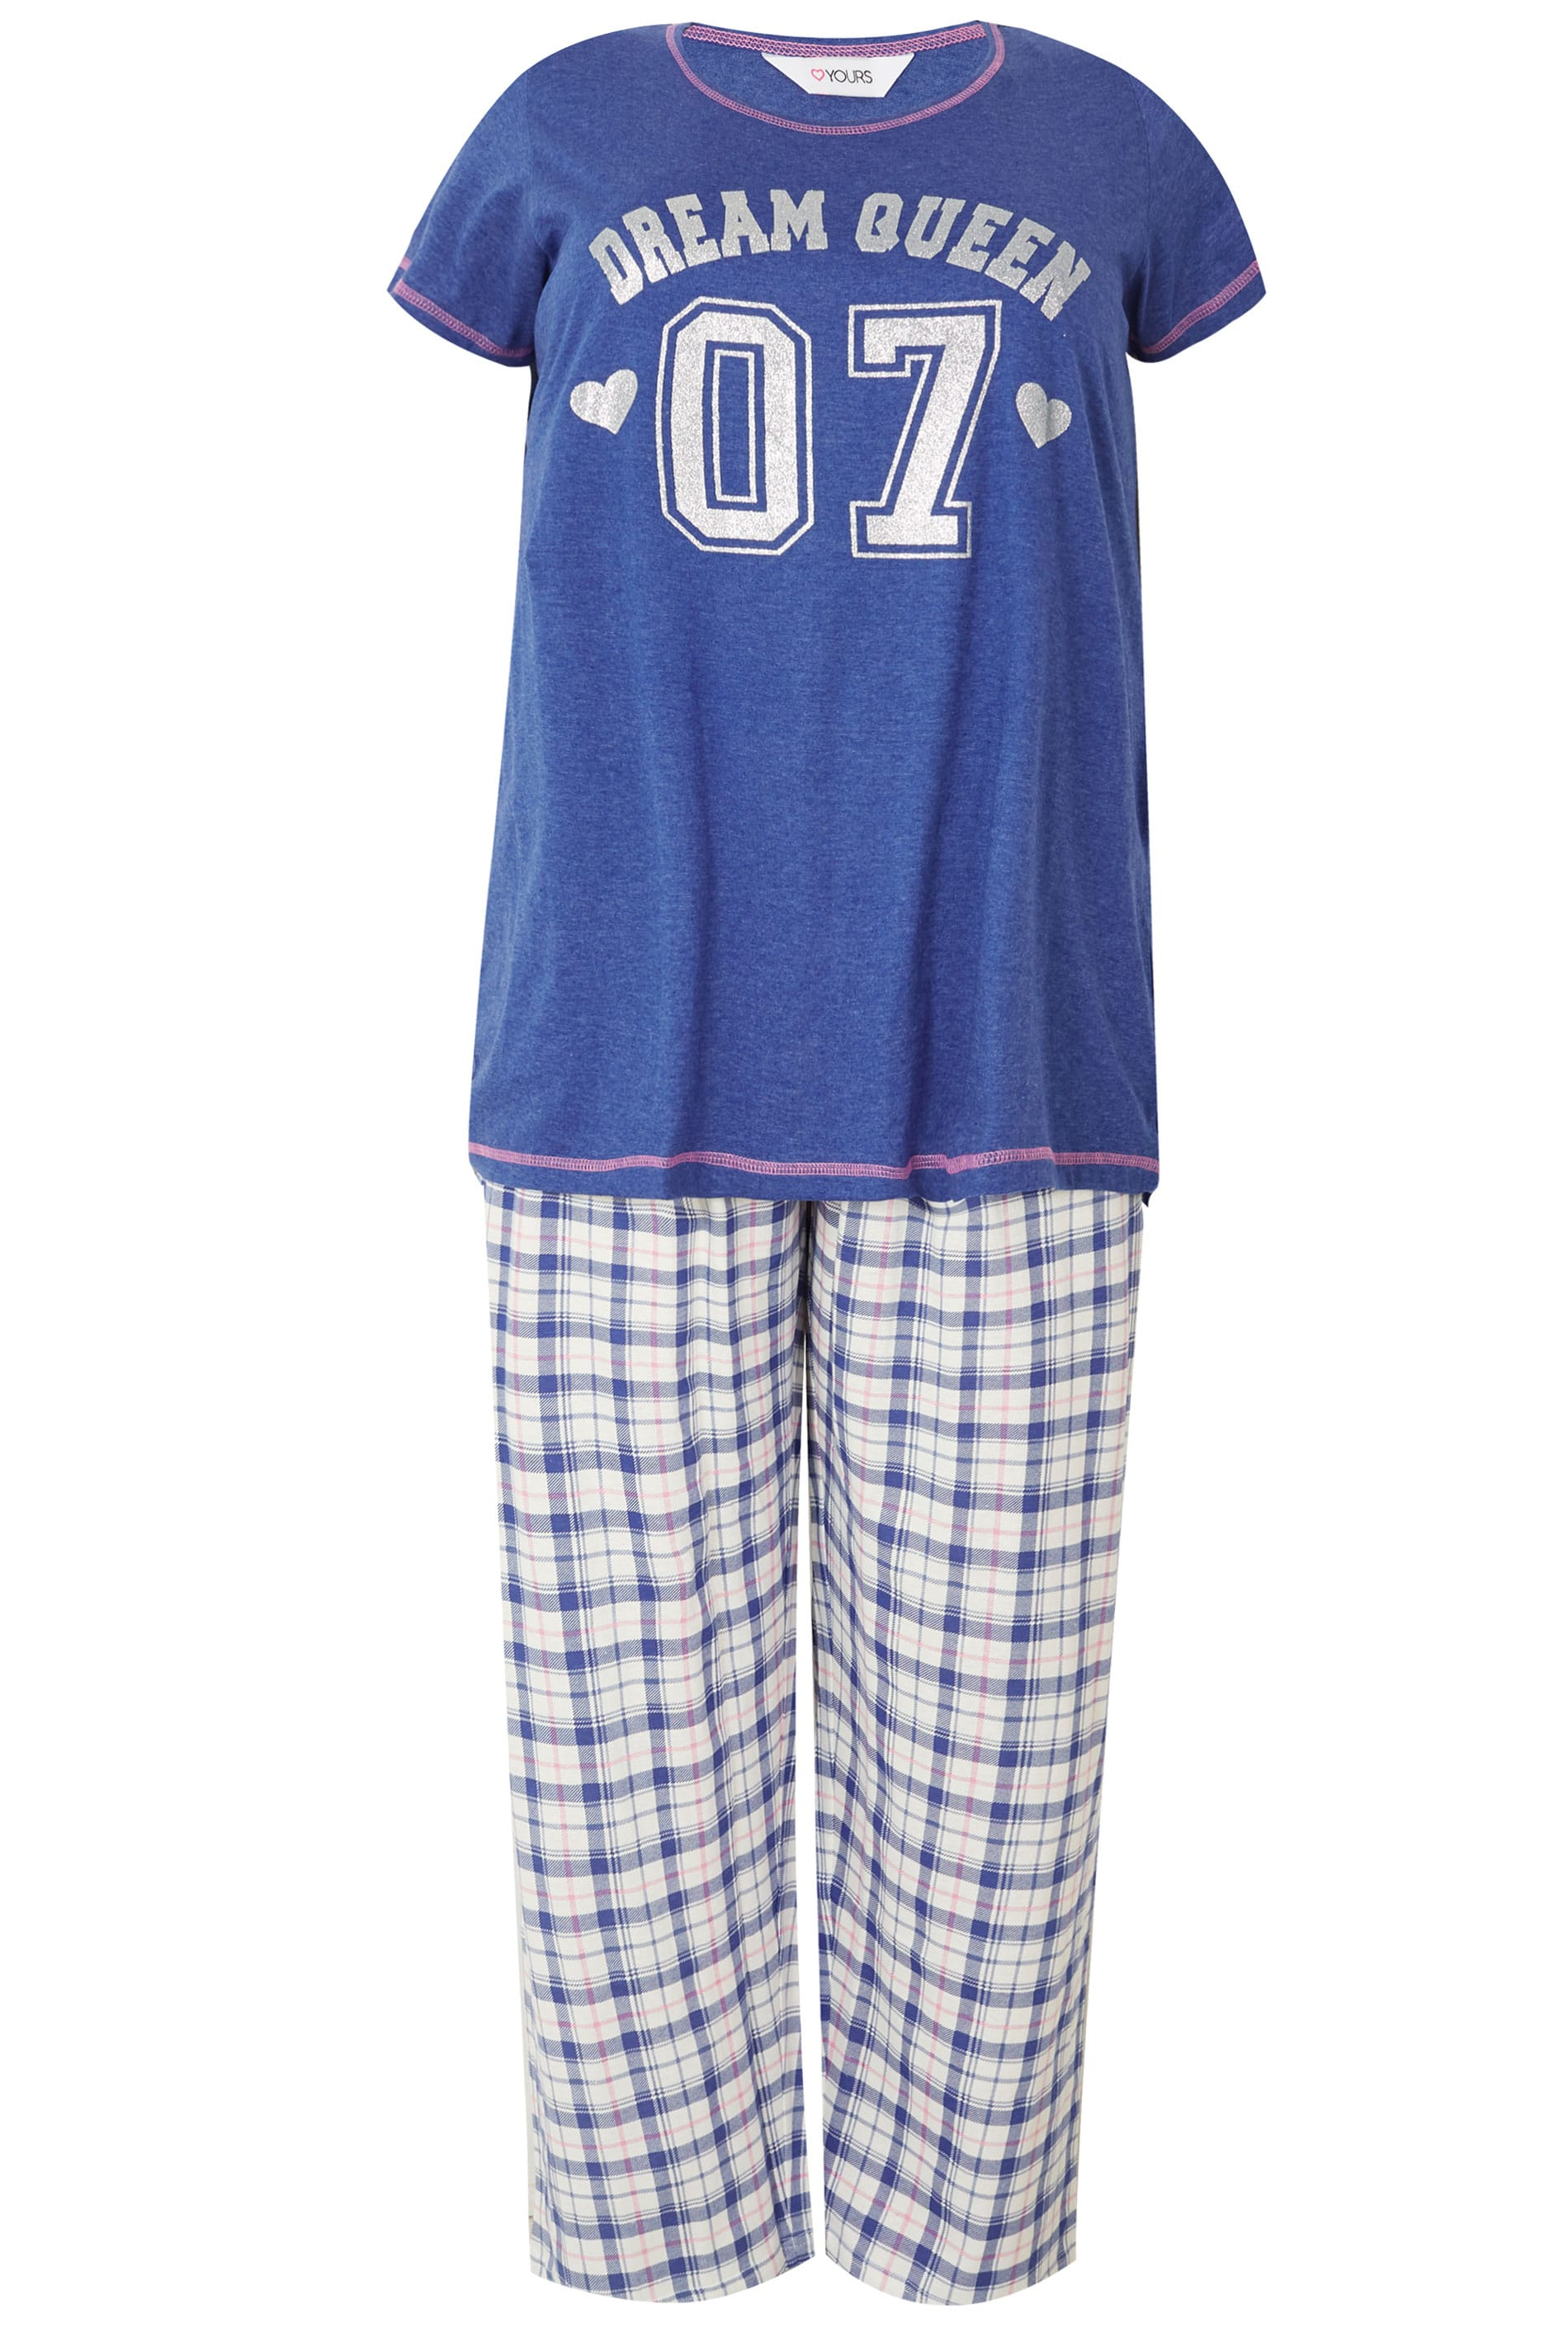 7b32033d3 Blue 'Dream Queen' Pyjama Set